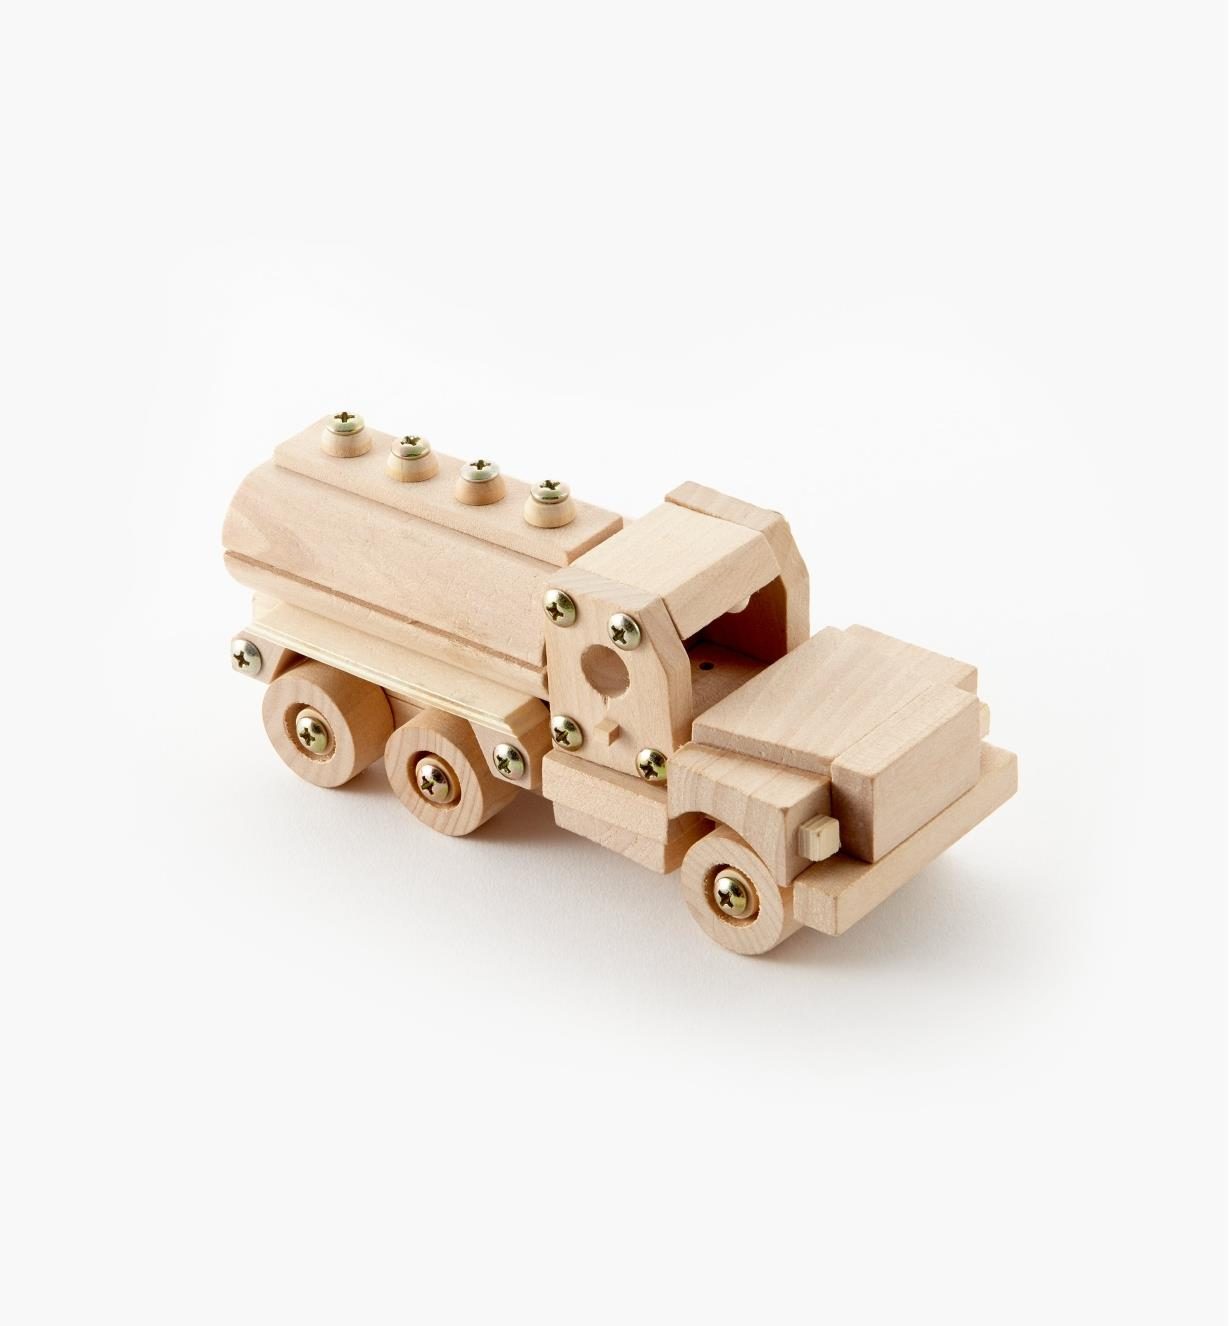 09A0535 - Tanker Truck Easy-To-Build Wooden Toy Kit